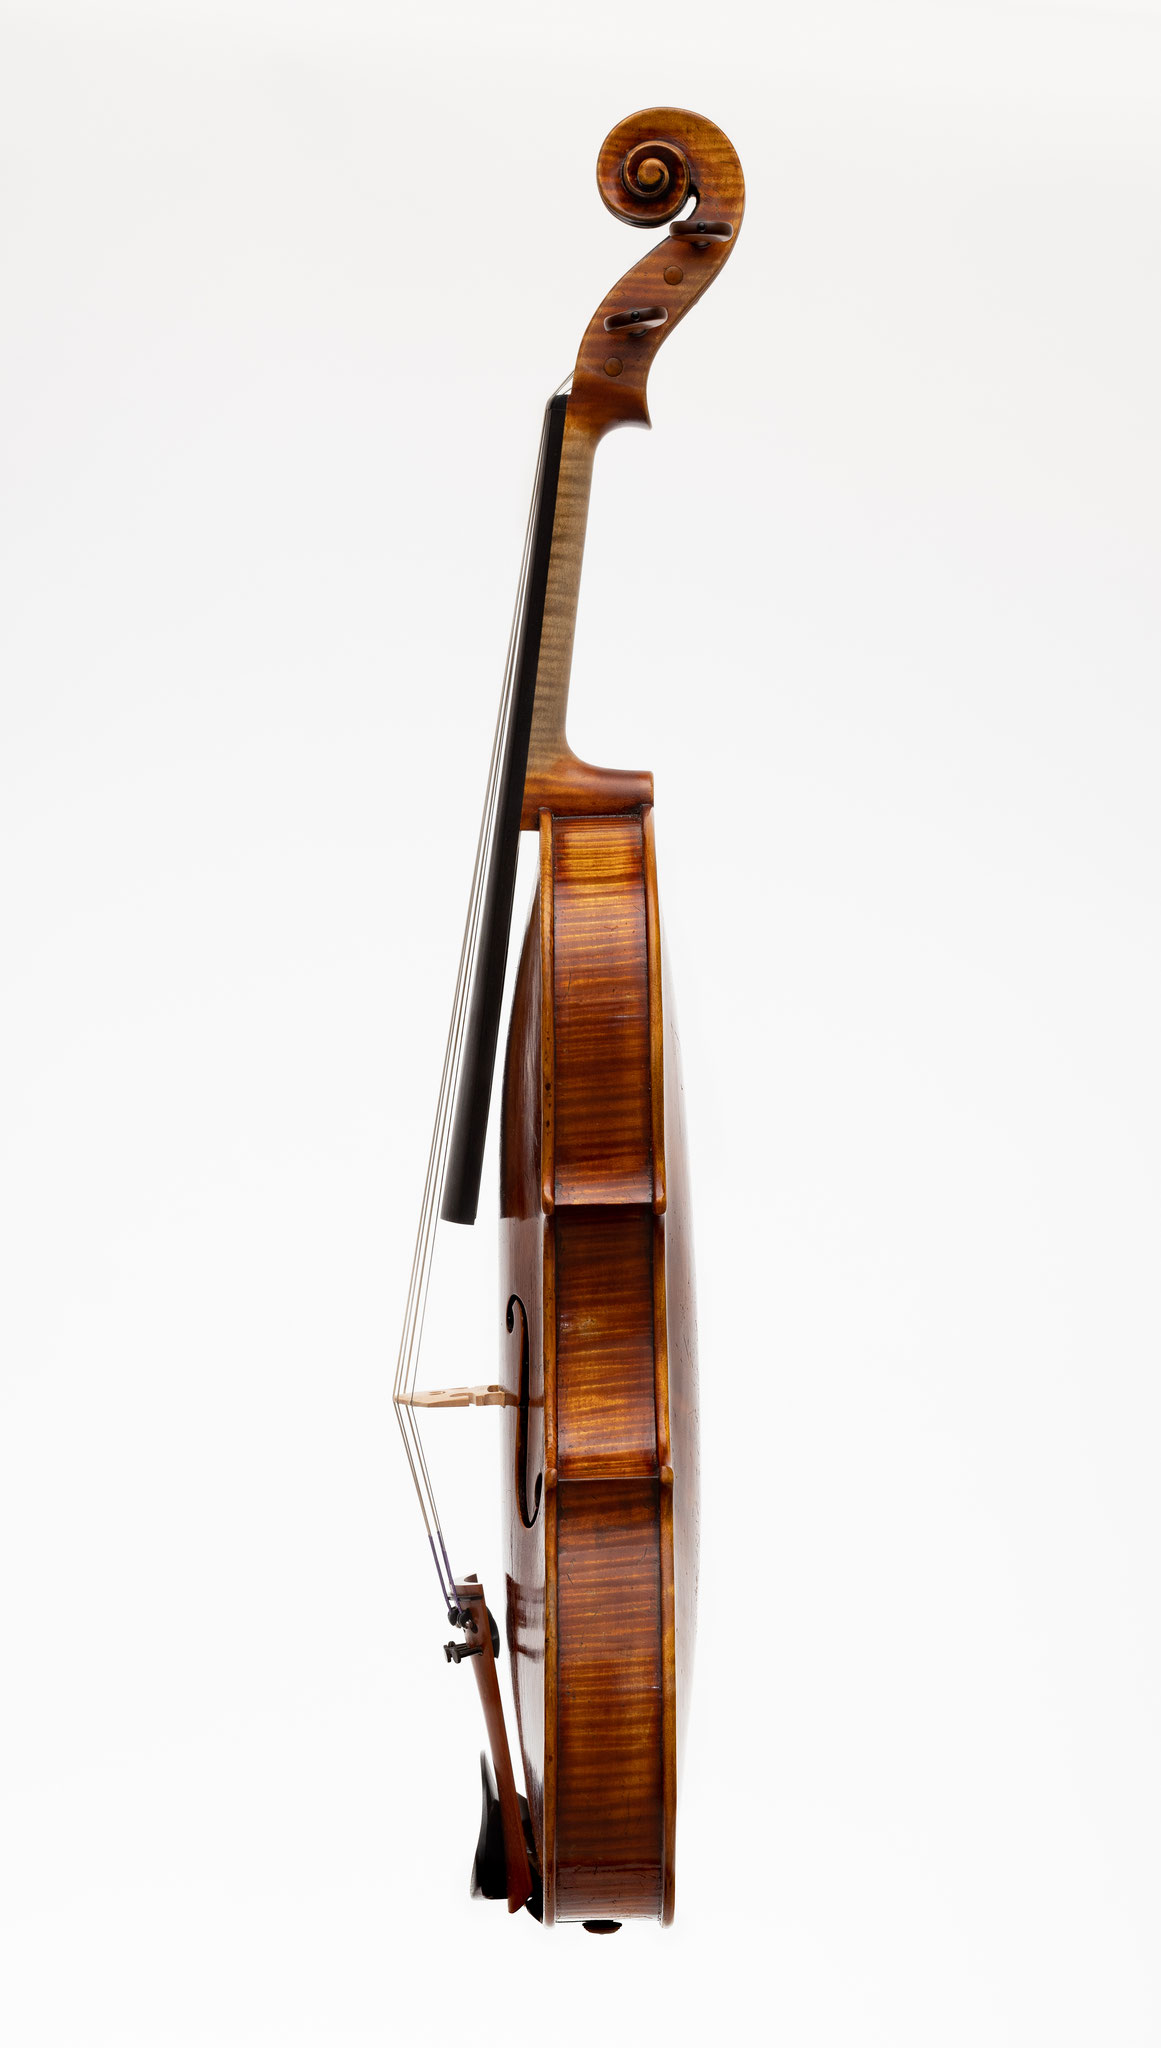 Viola im Stil von G.Guarneri del Gesù (2019/CH), Photo: VDB Photography